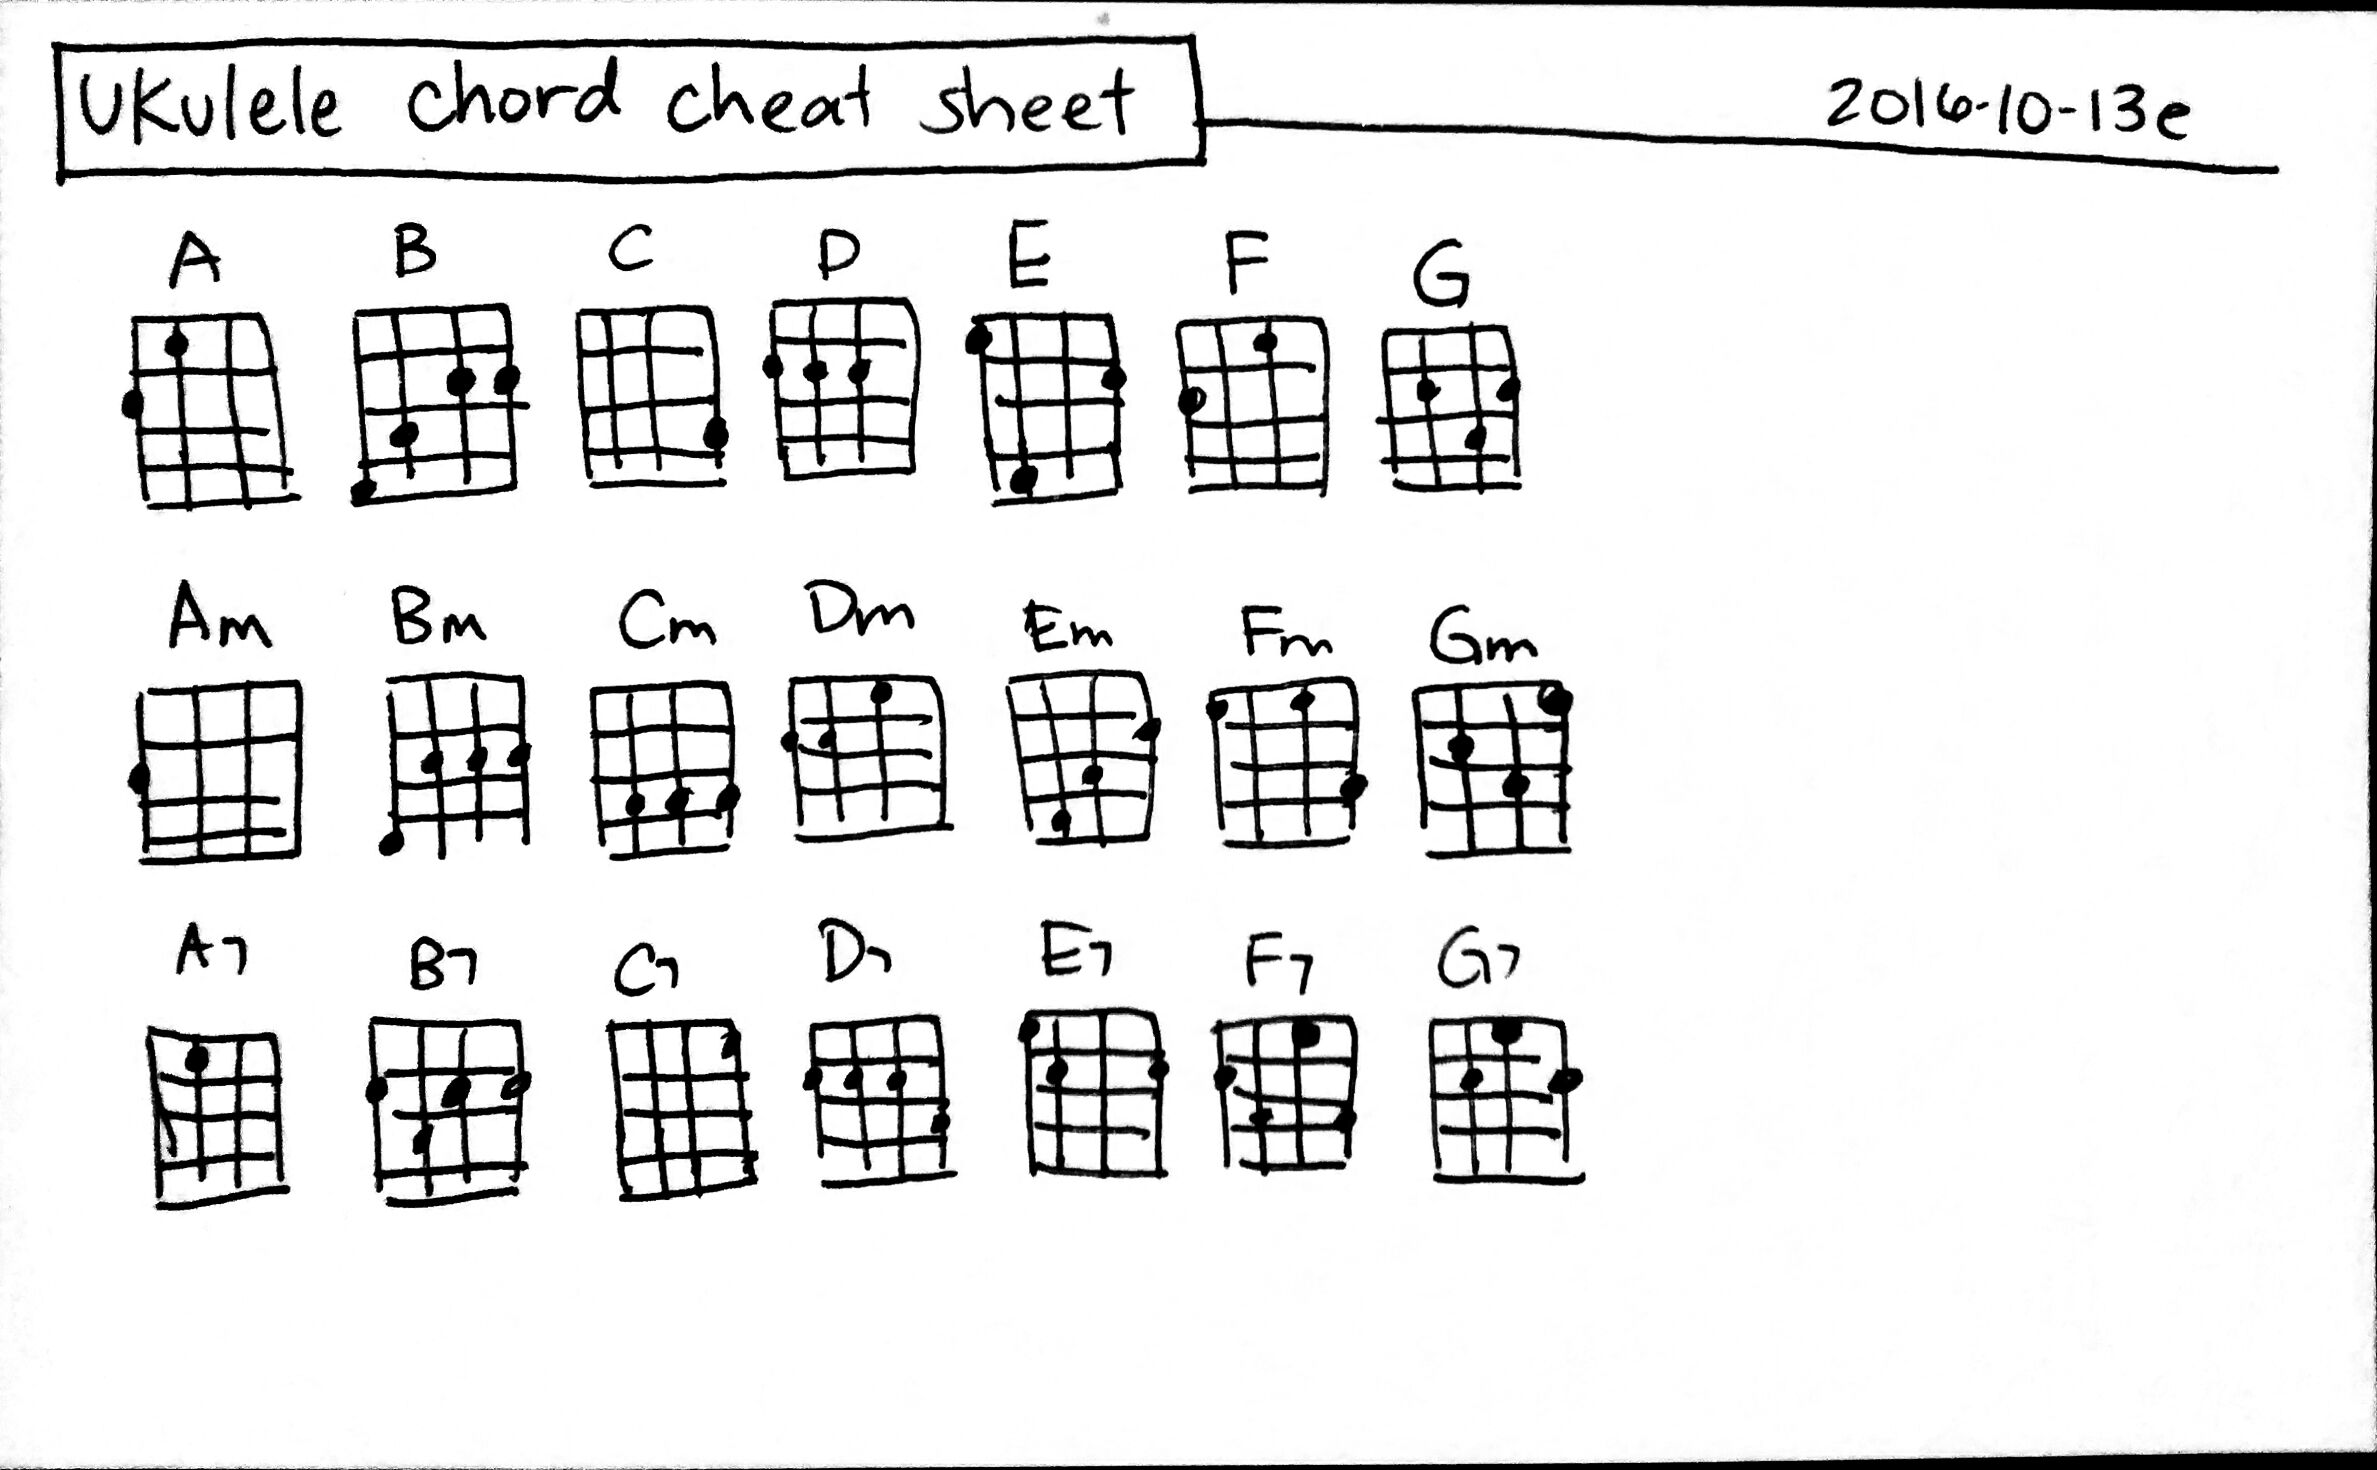 2016-10-13e Ukulele chord cheat sheet #music #ukulele #chords.jpg